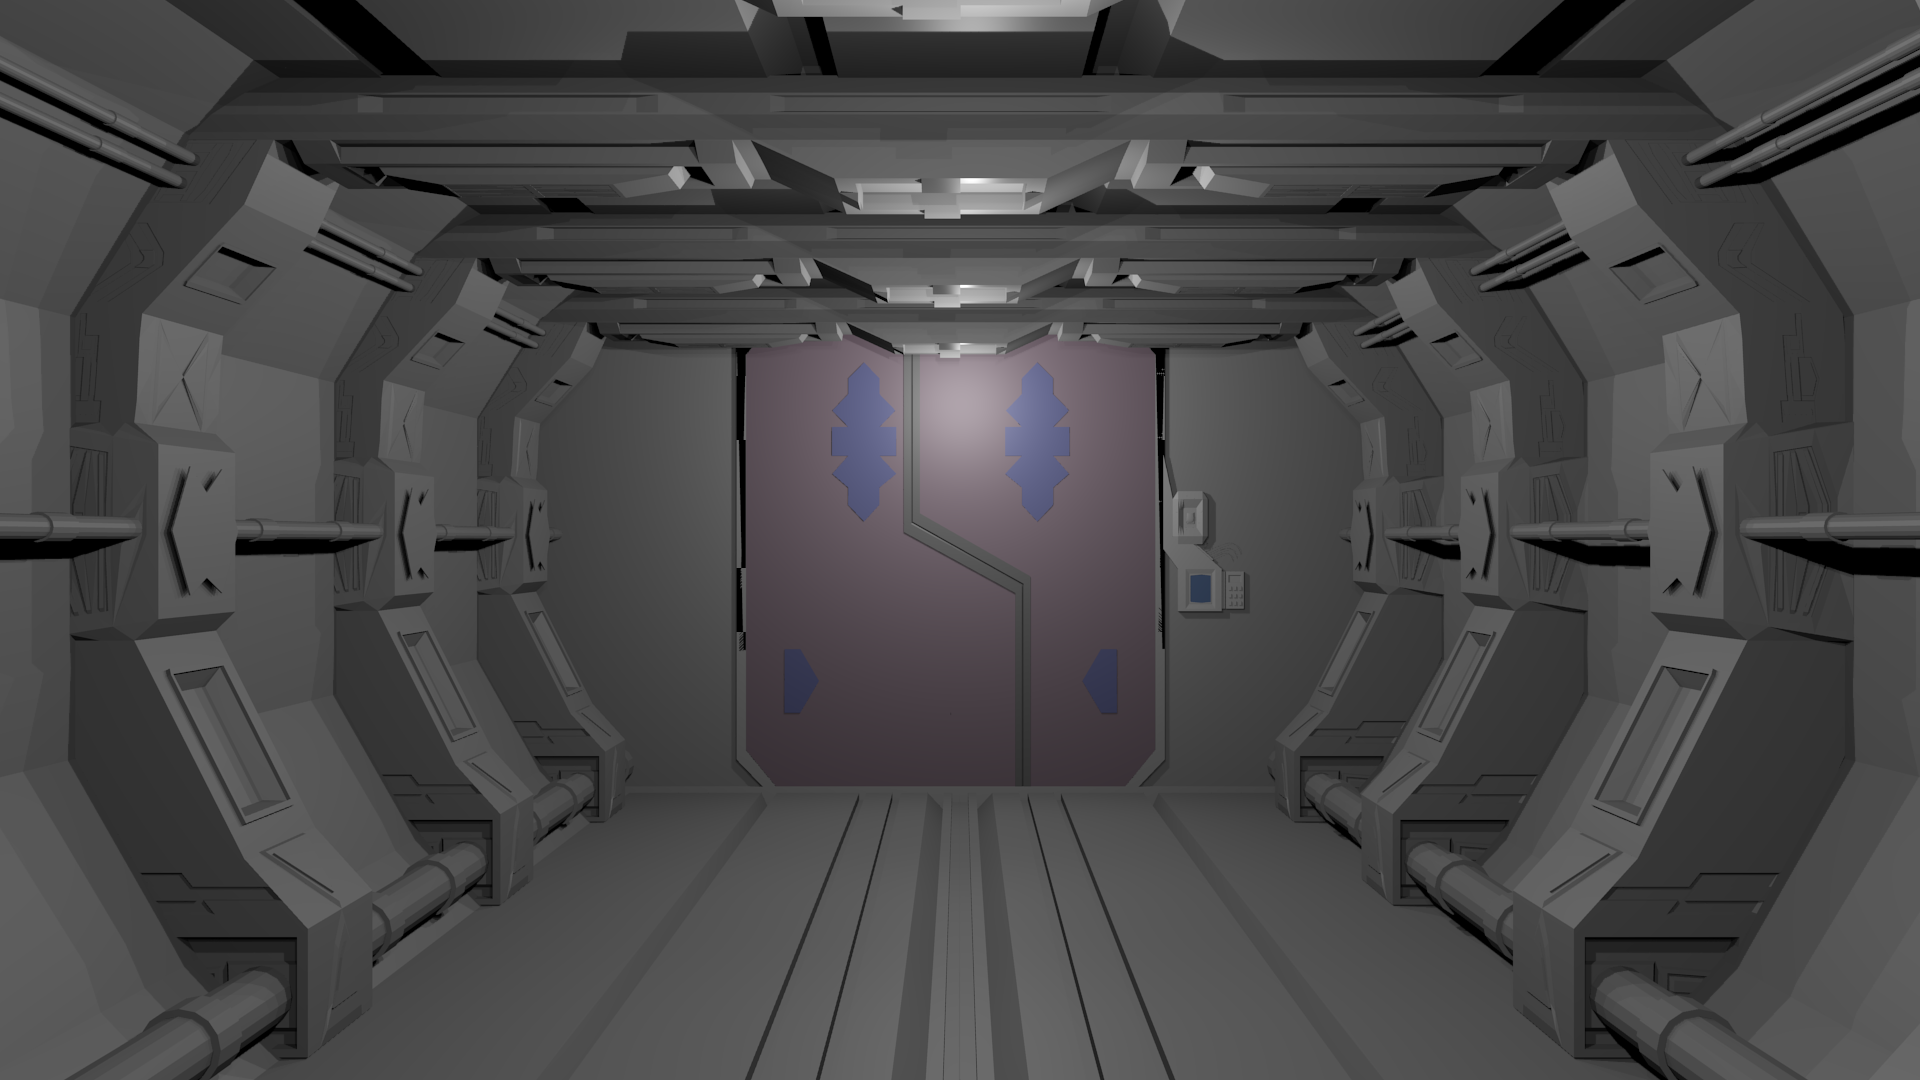 Wip couloir de vaisseau spatial blender par lehrse for Decoration porte 3d